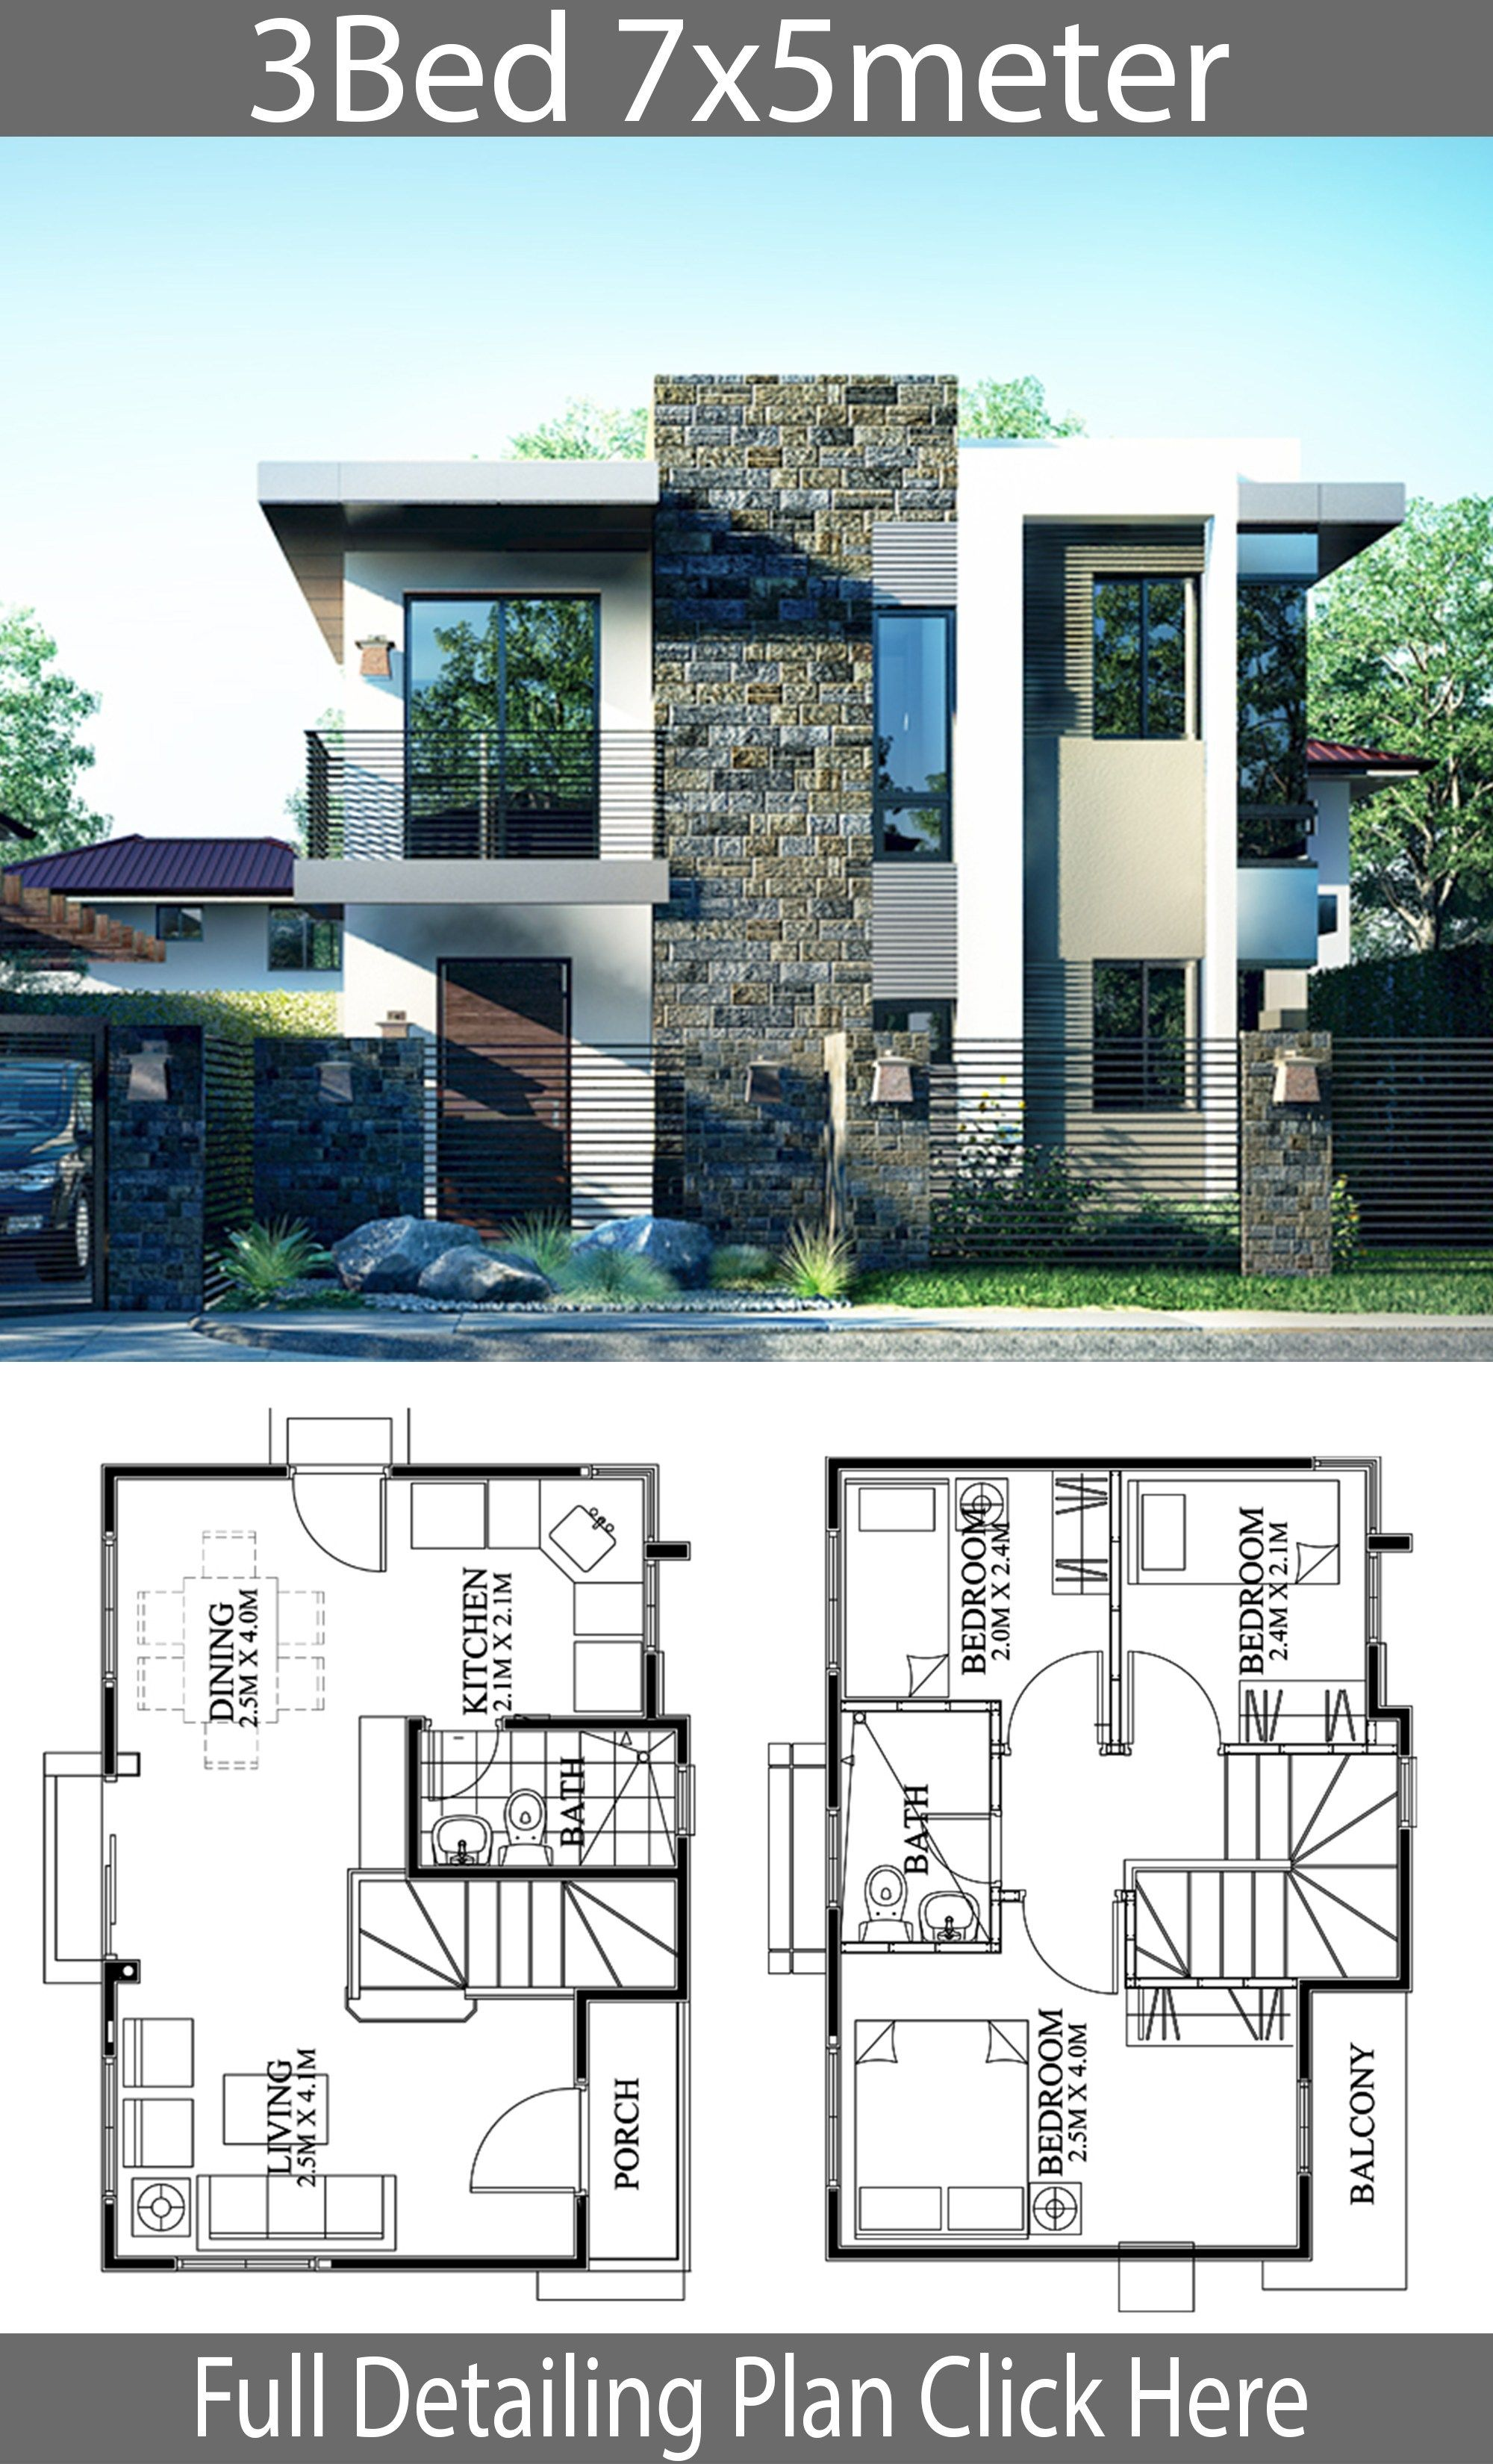 Small Home Design Plan 7x5m With 3 Bedrooms Home Design With Plan House Designs Exterior Duplex House Plans Home Design Plan